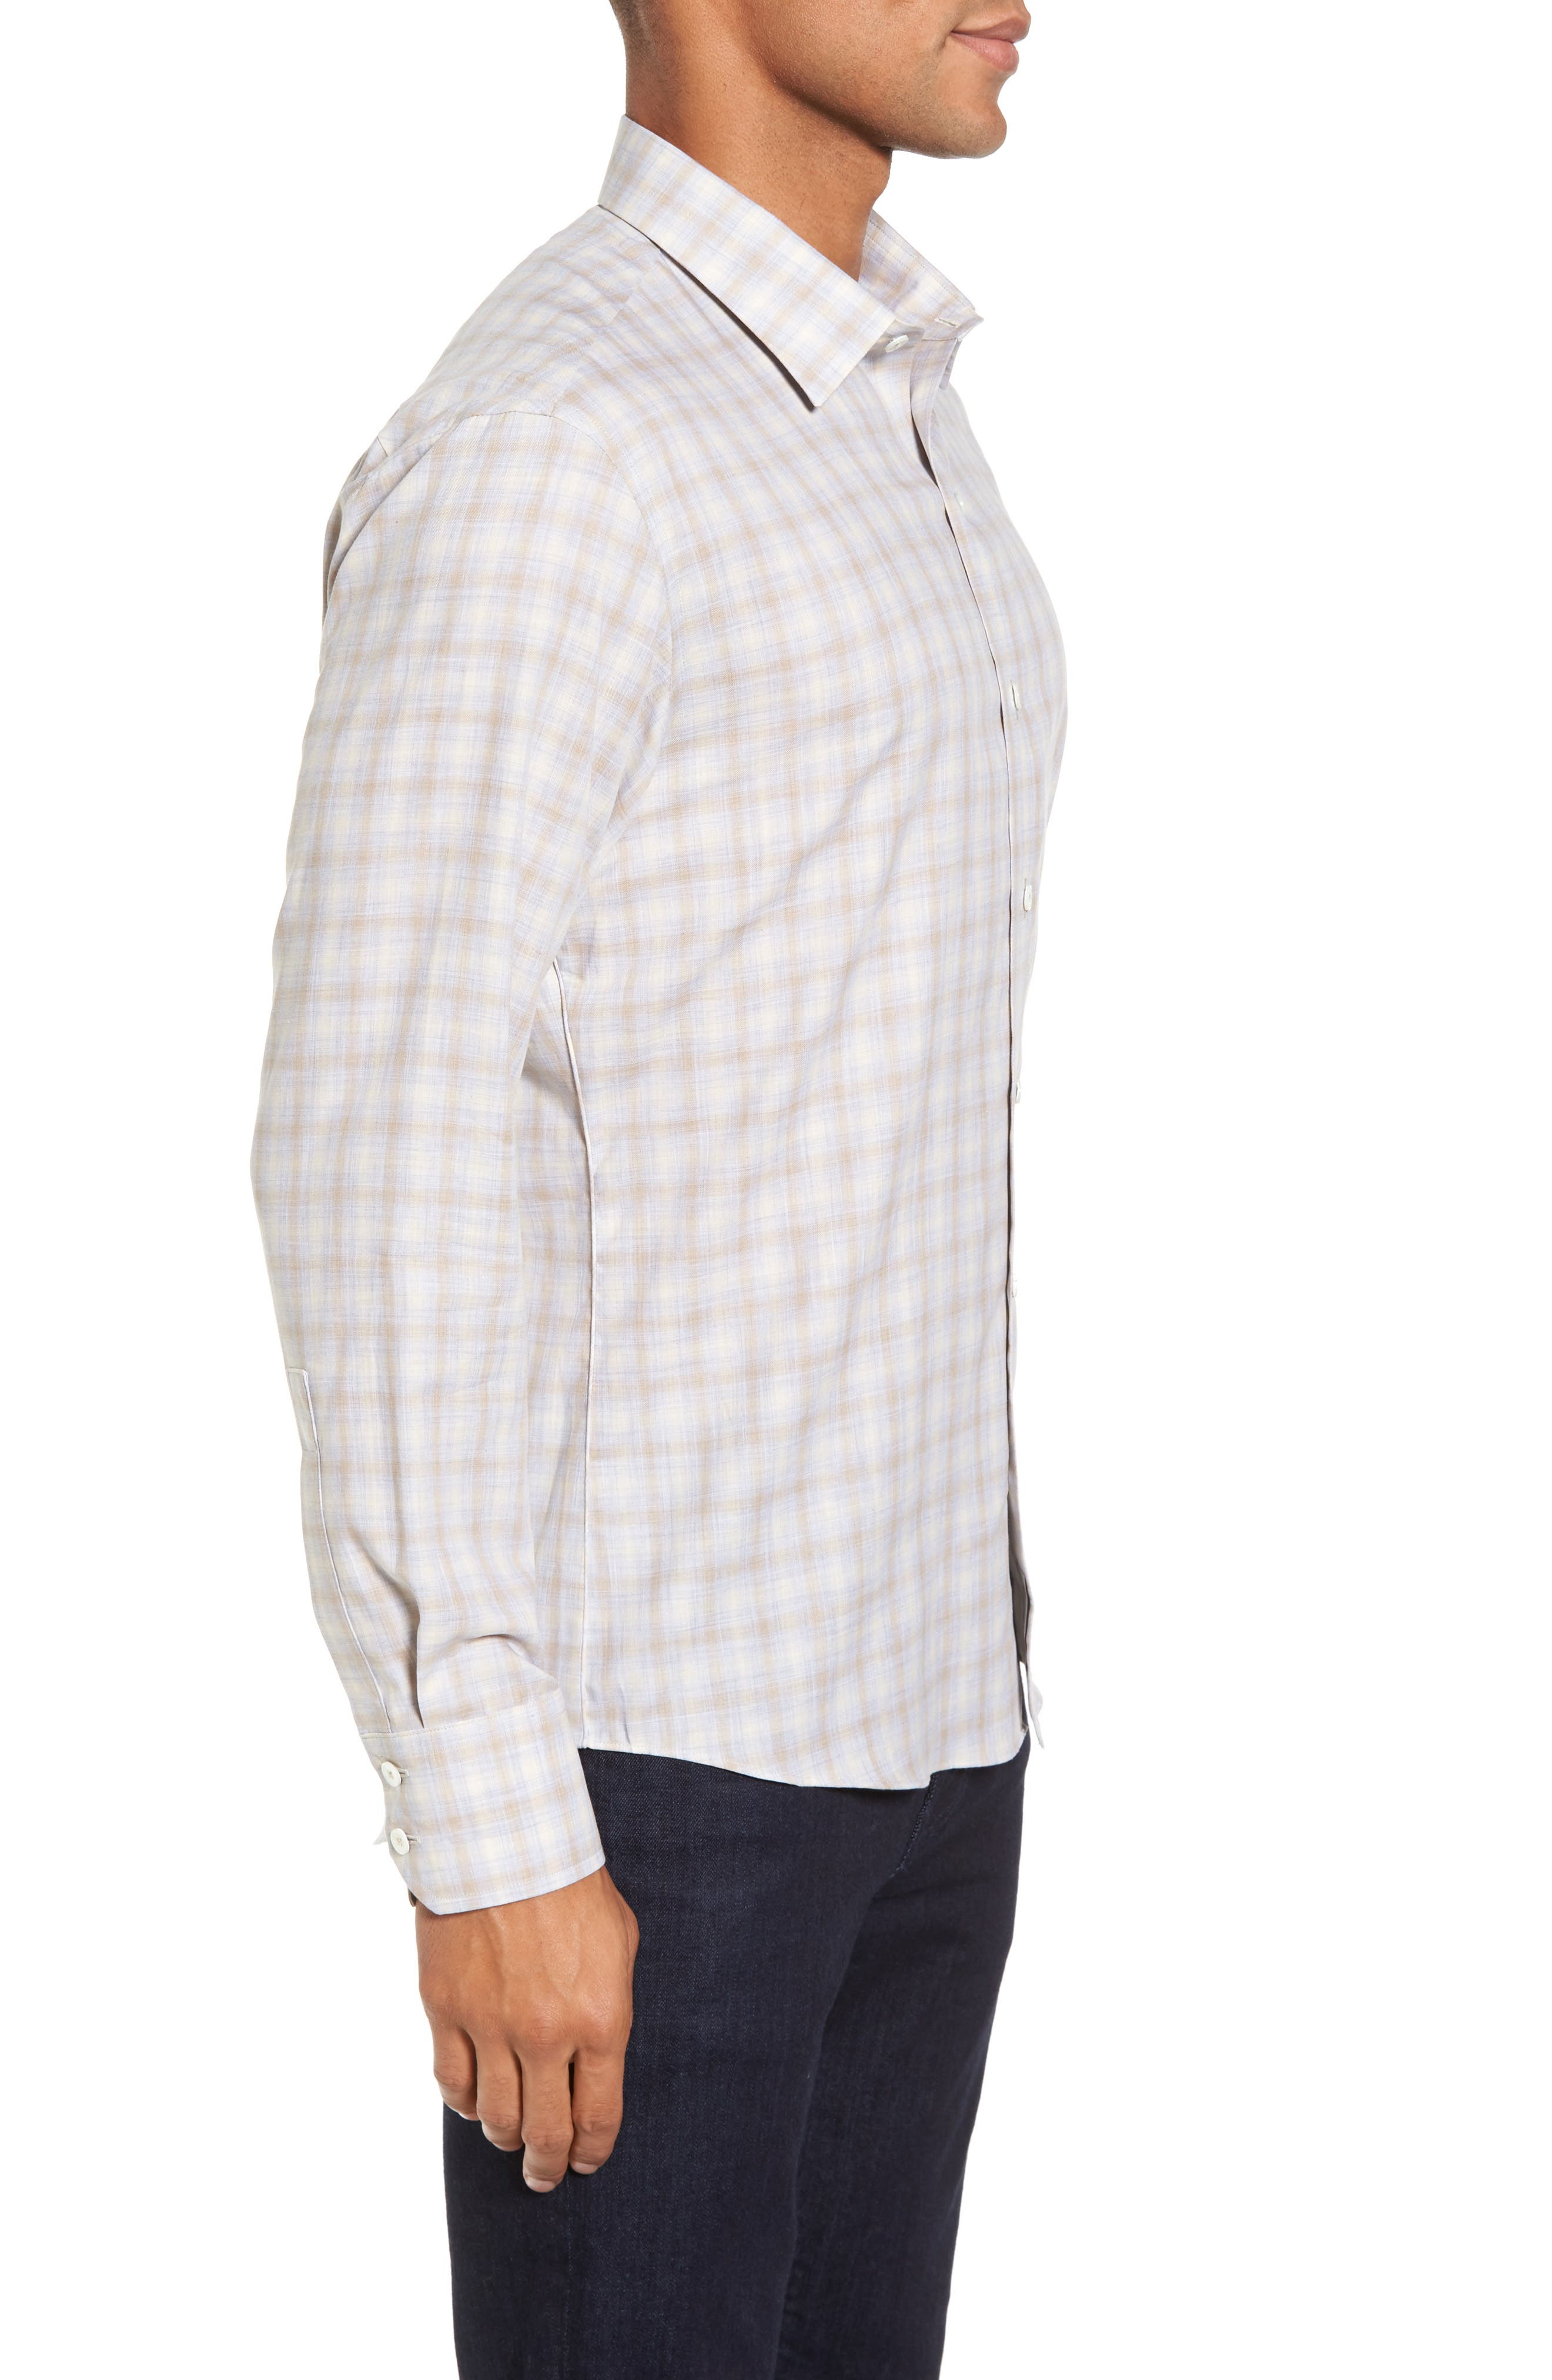 Lowles Slim Fit Plaid Sport Shirt,                             Alternate thumbnail 3, color,